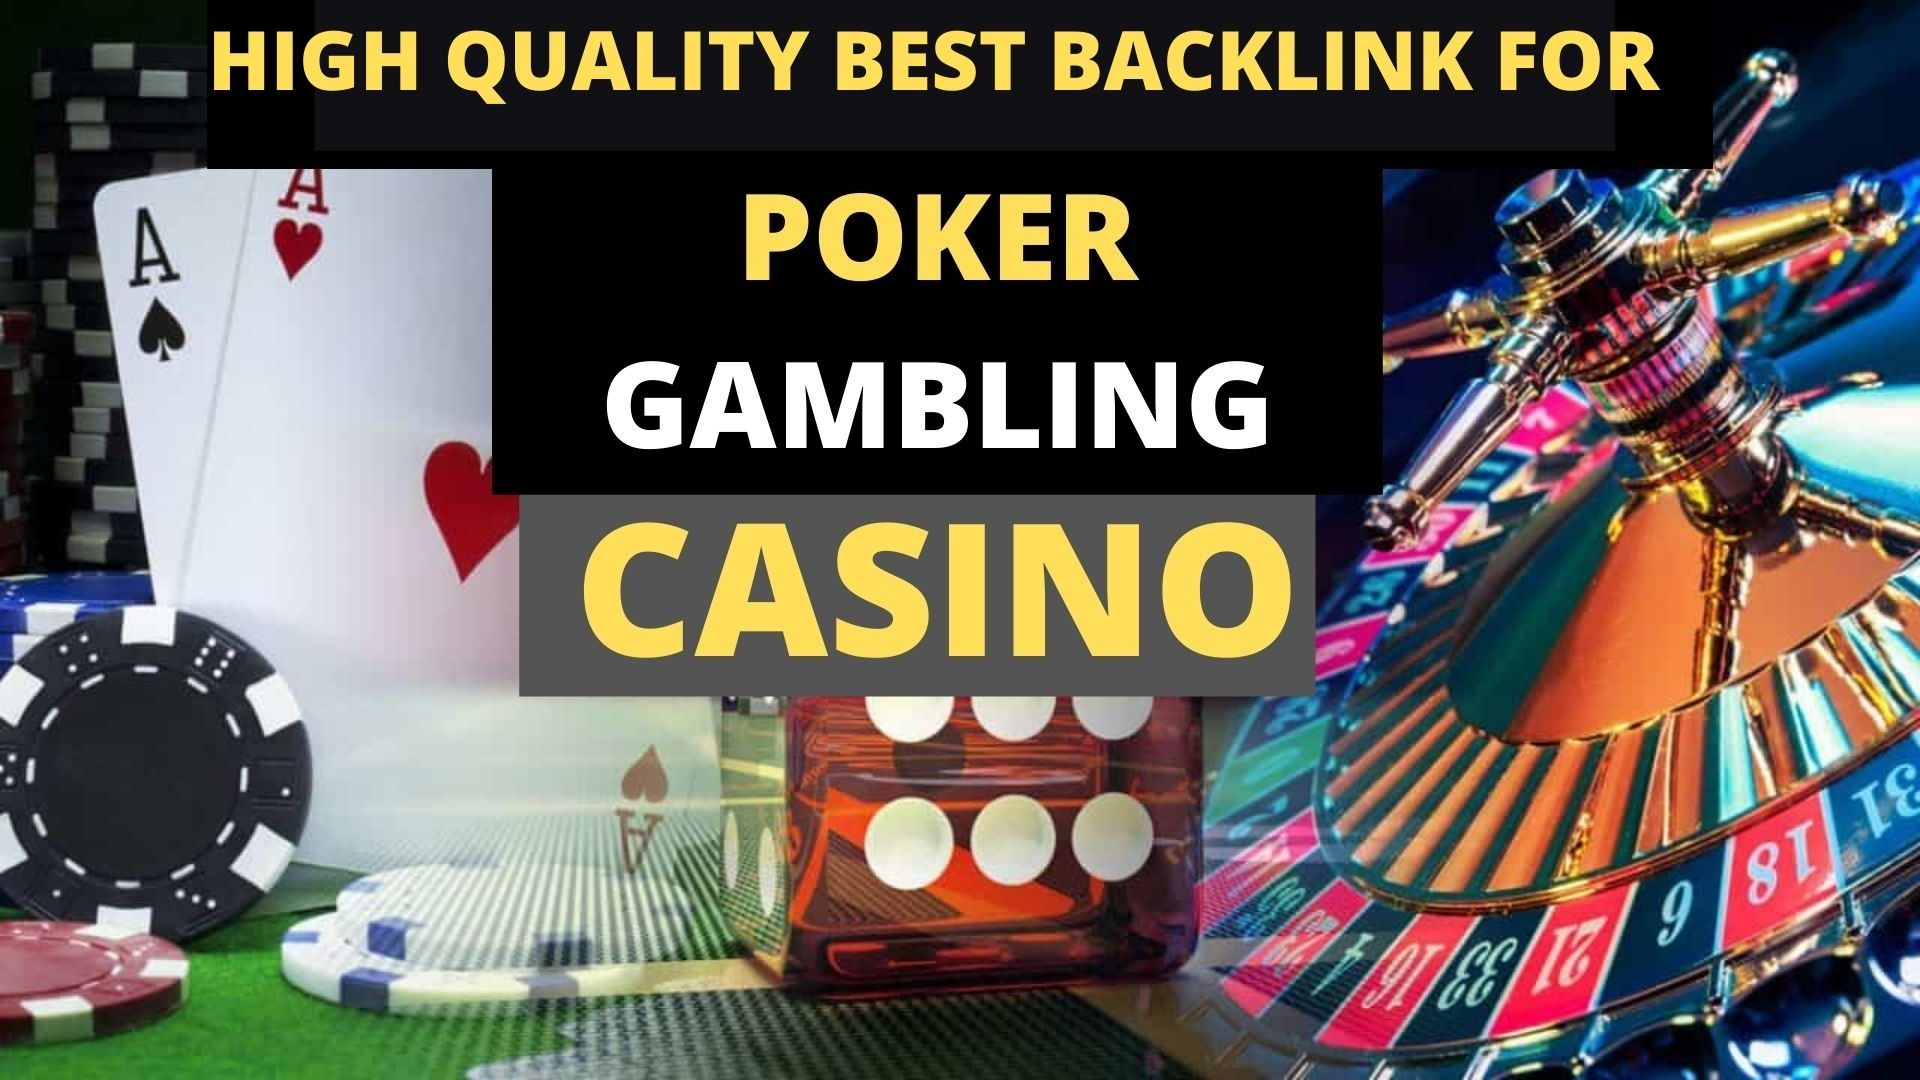 250+ Casino,  Poker,  Gambling High Quality Pbn Backlinks on high authority sites